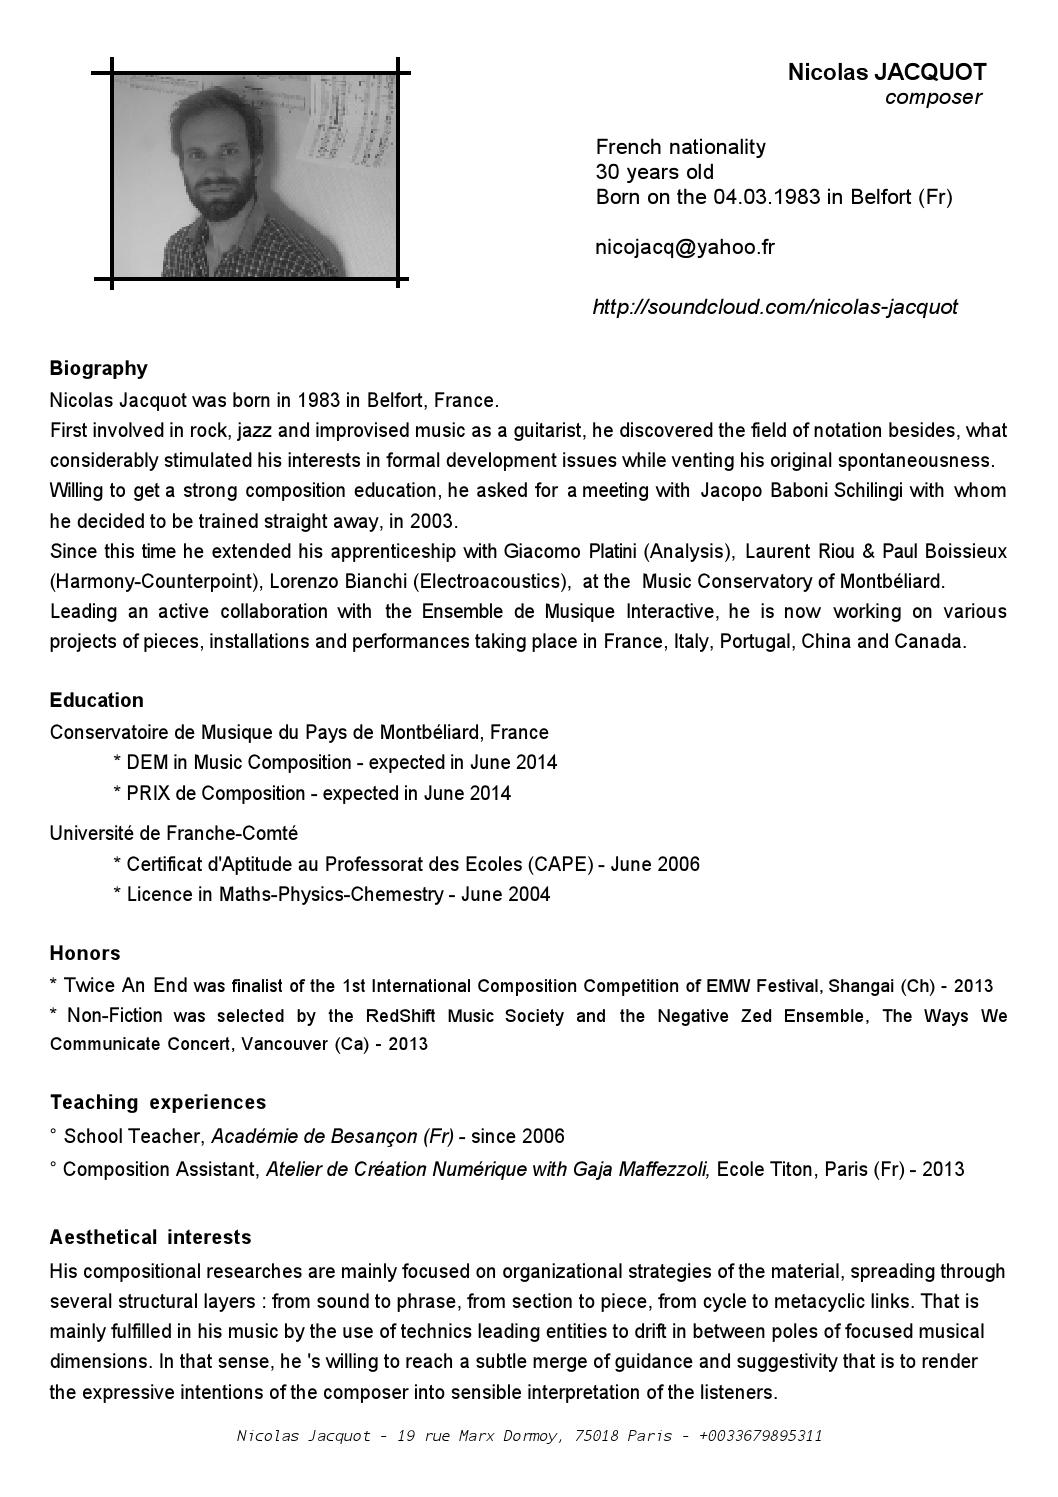 one page resume by nicolas-jacquot